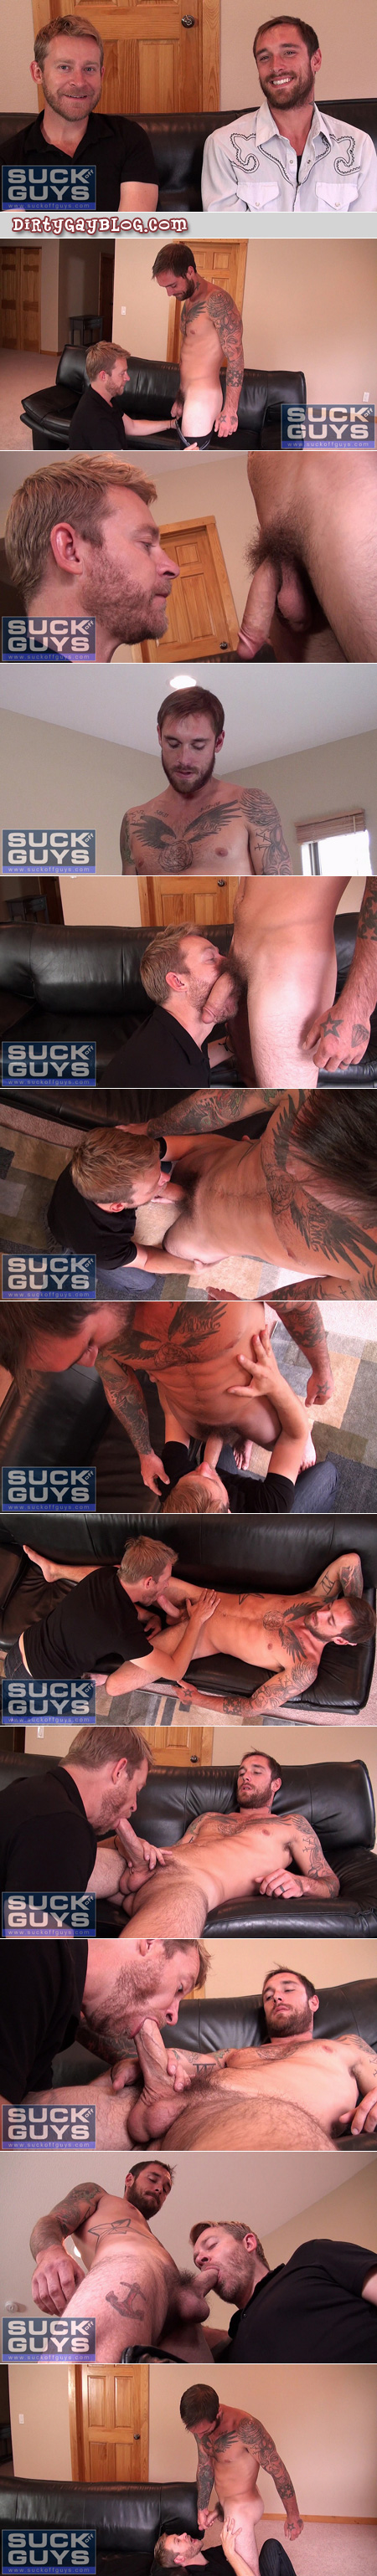 Horny bearded guy sucks cum out of a hung straight guy with lots of tattoos and a hairy chest.